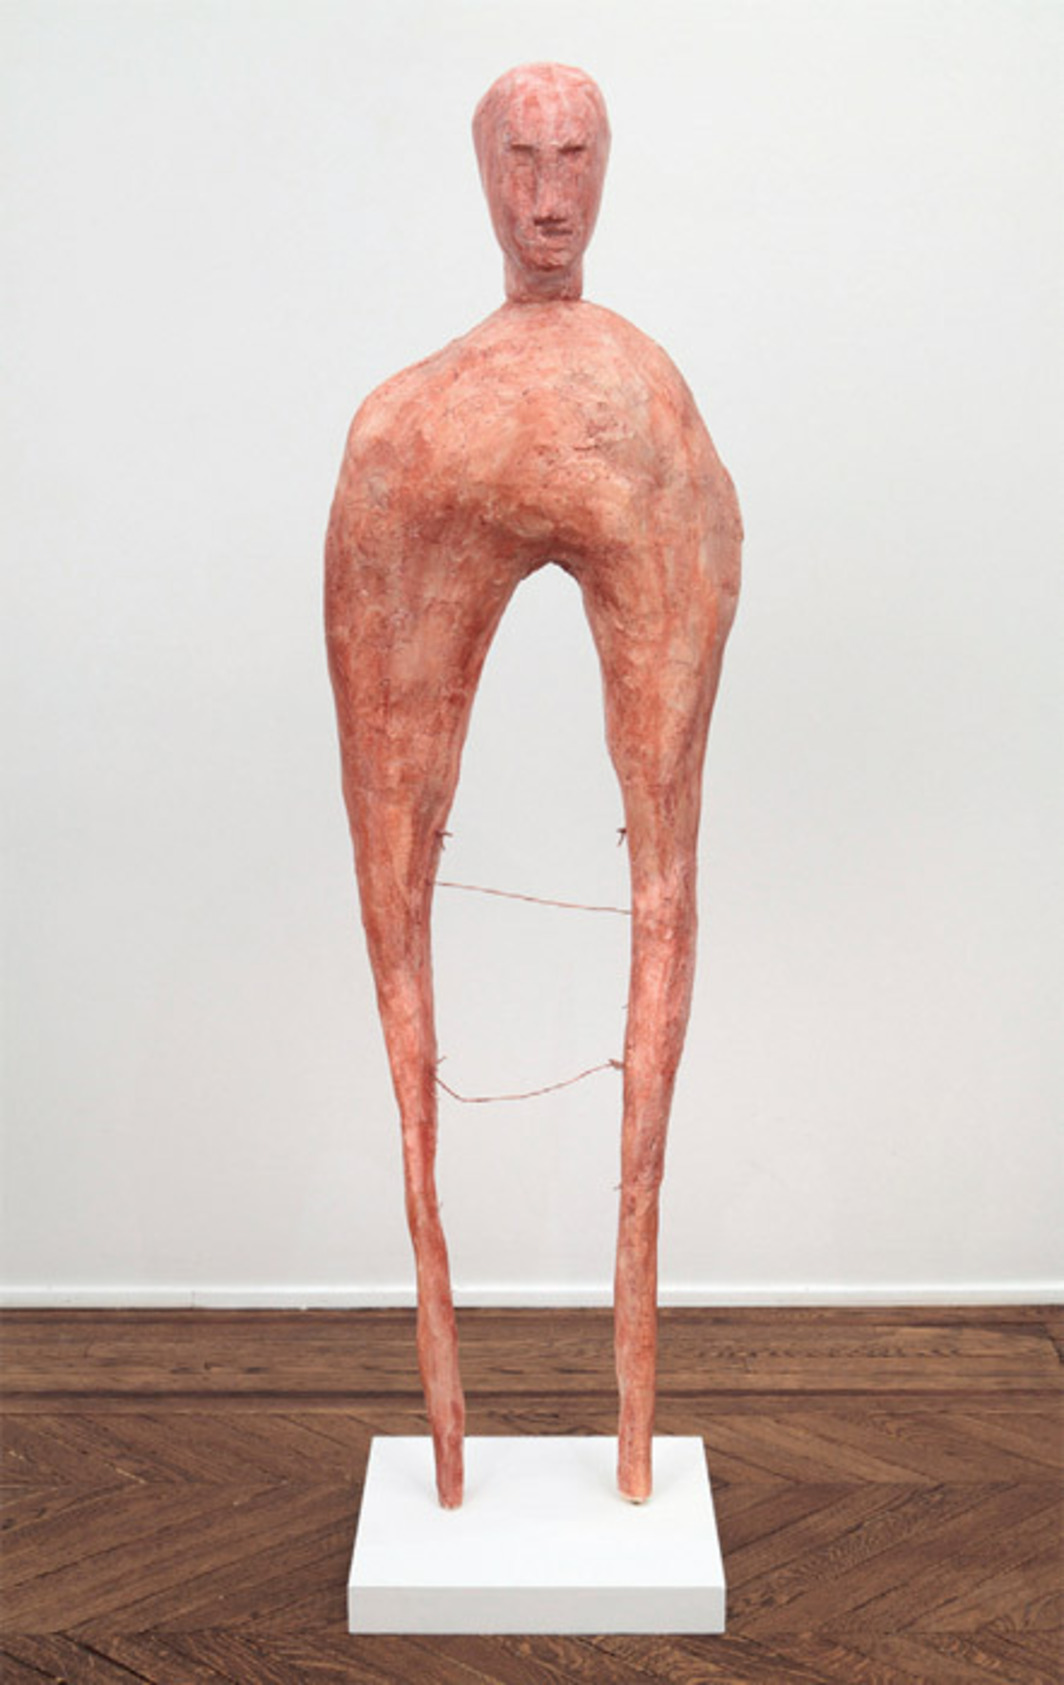 "Enrico David, Light Days, 2012, polystyrene, polyurethane foam, copper, tissue paper, watercolor, bone, 67 x 80 3/4 x 15 3/4"". Michael Werner Gallery."